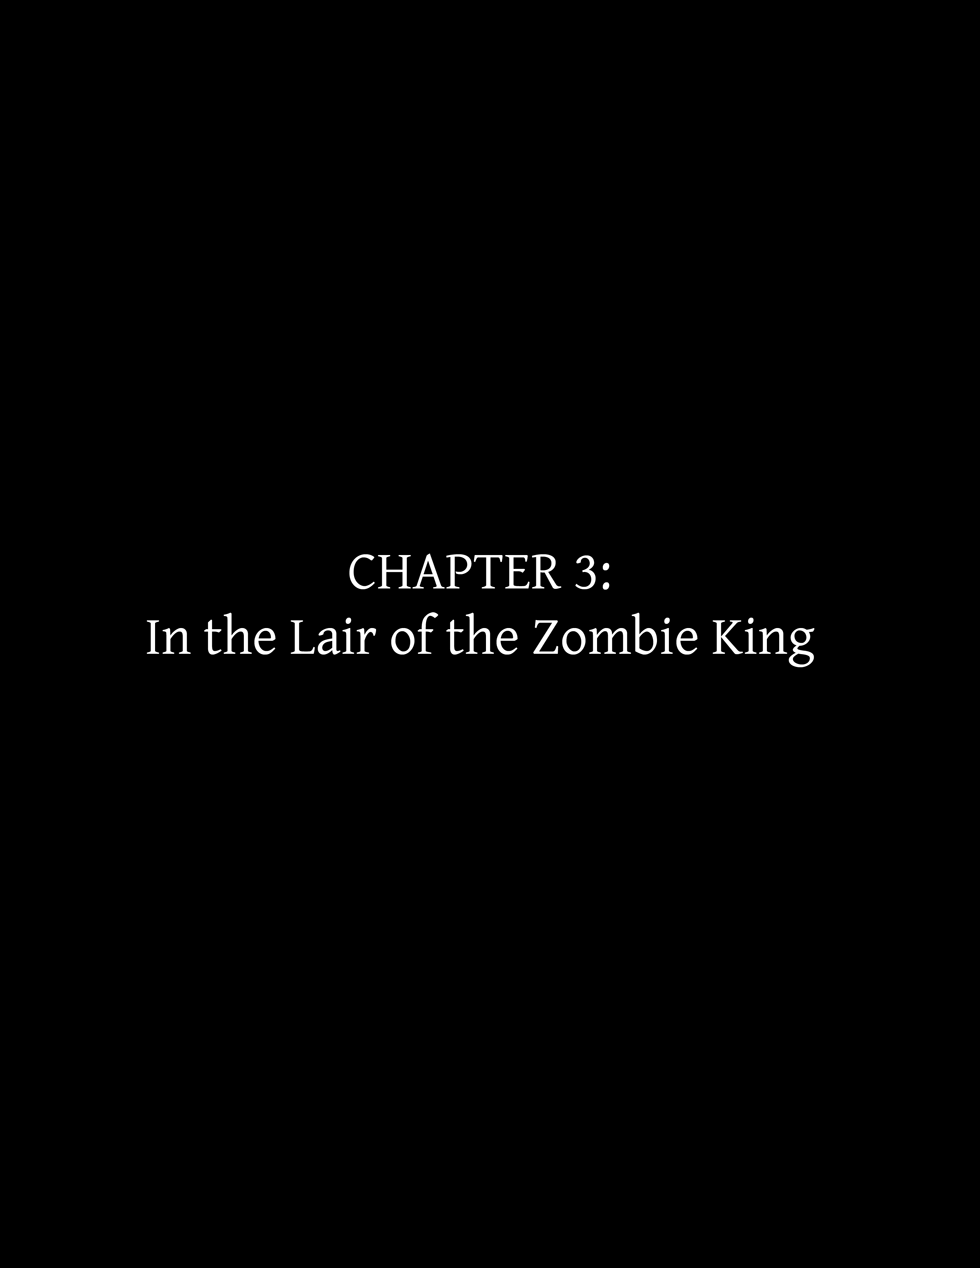 Chapter 3: In the Lair of the Zombie King